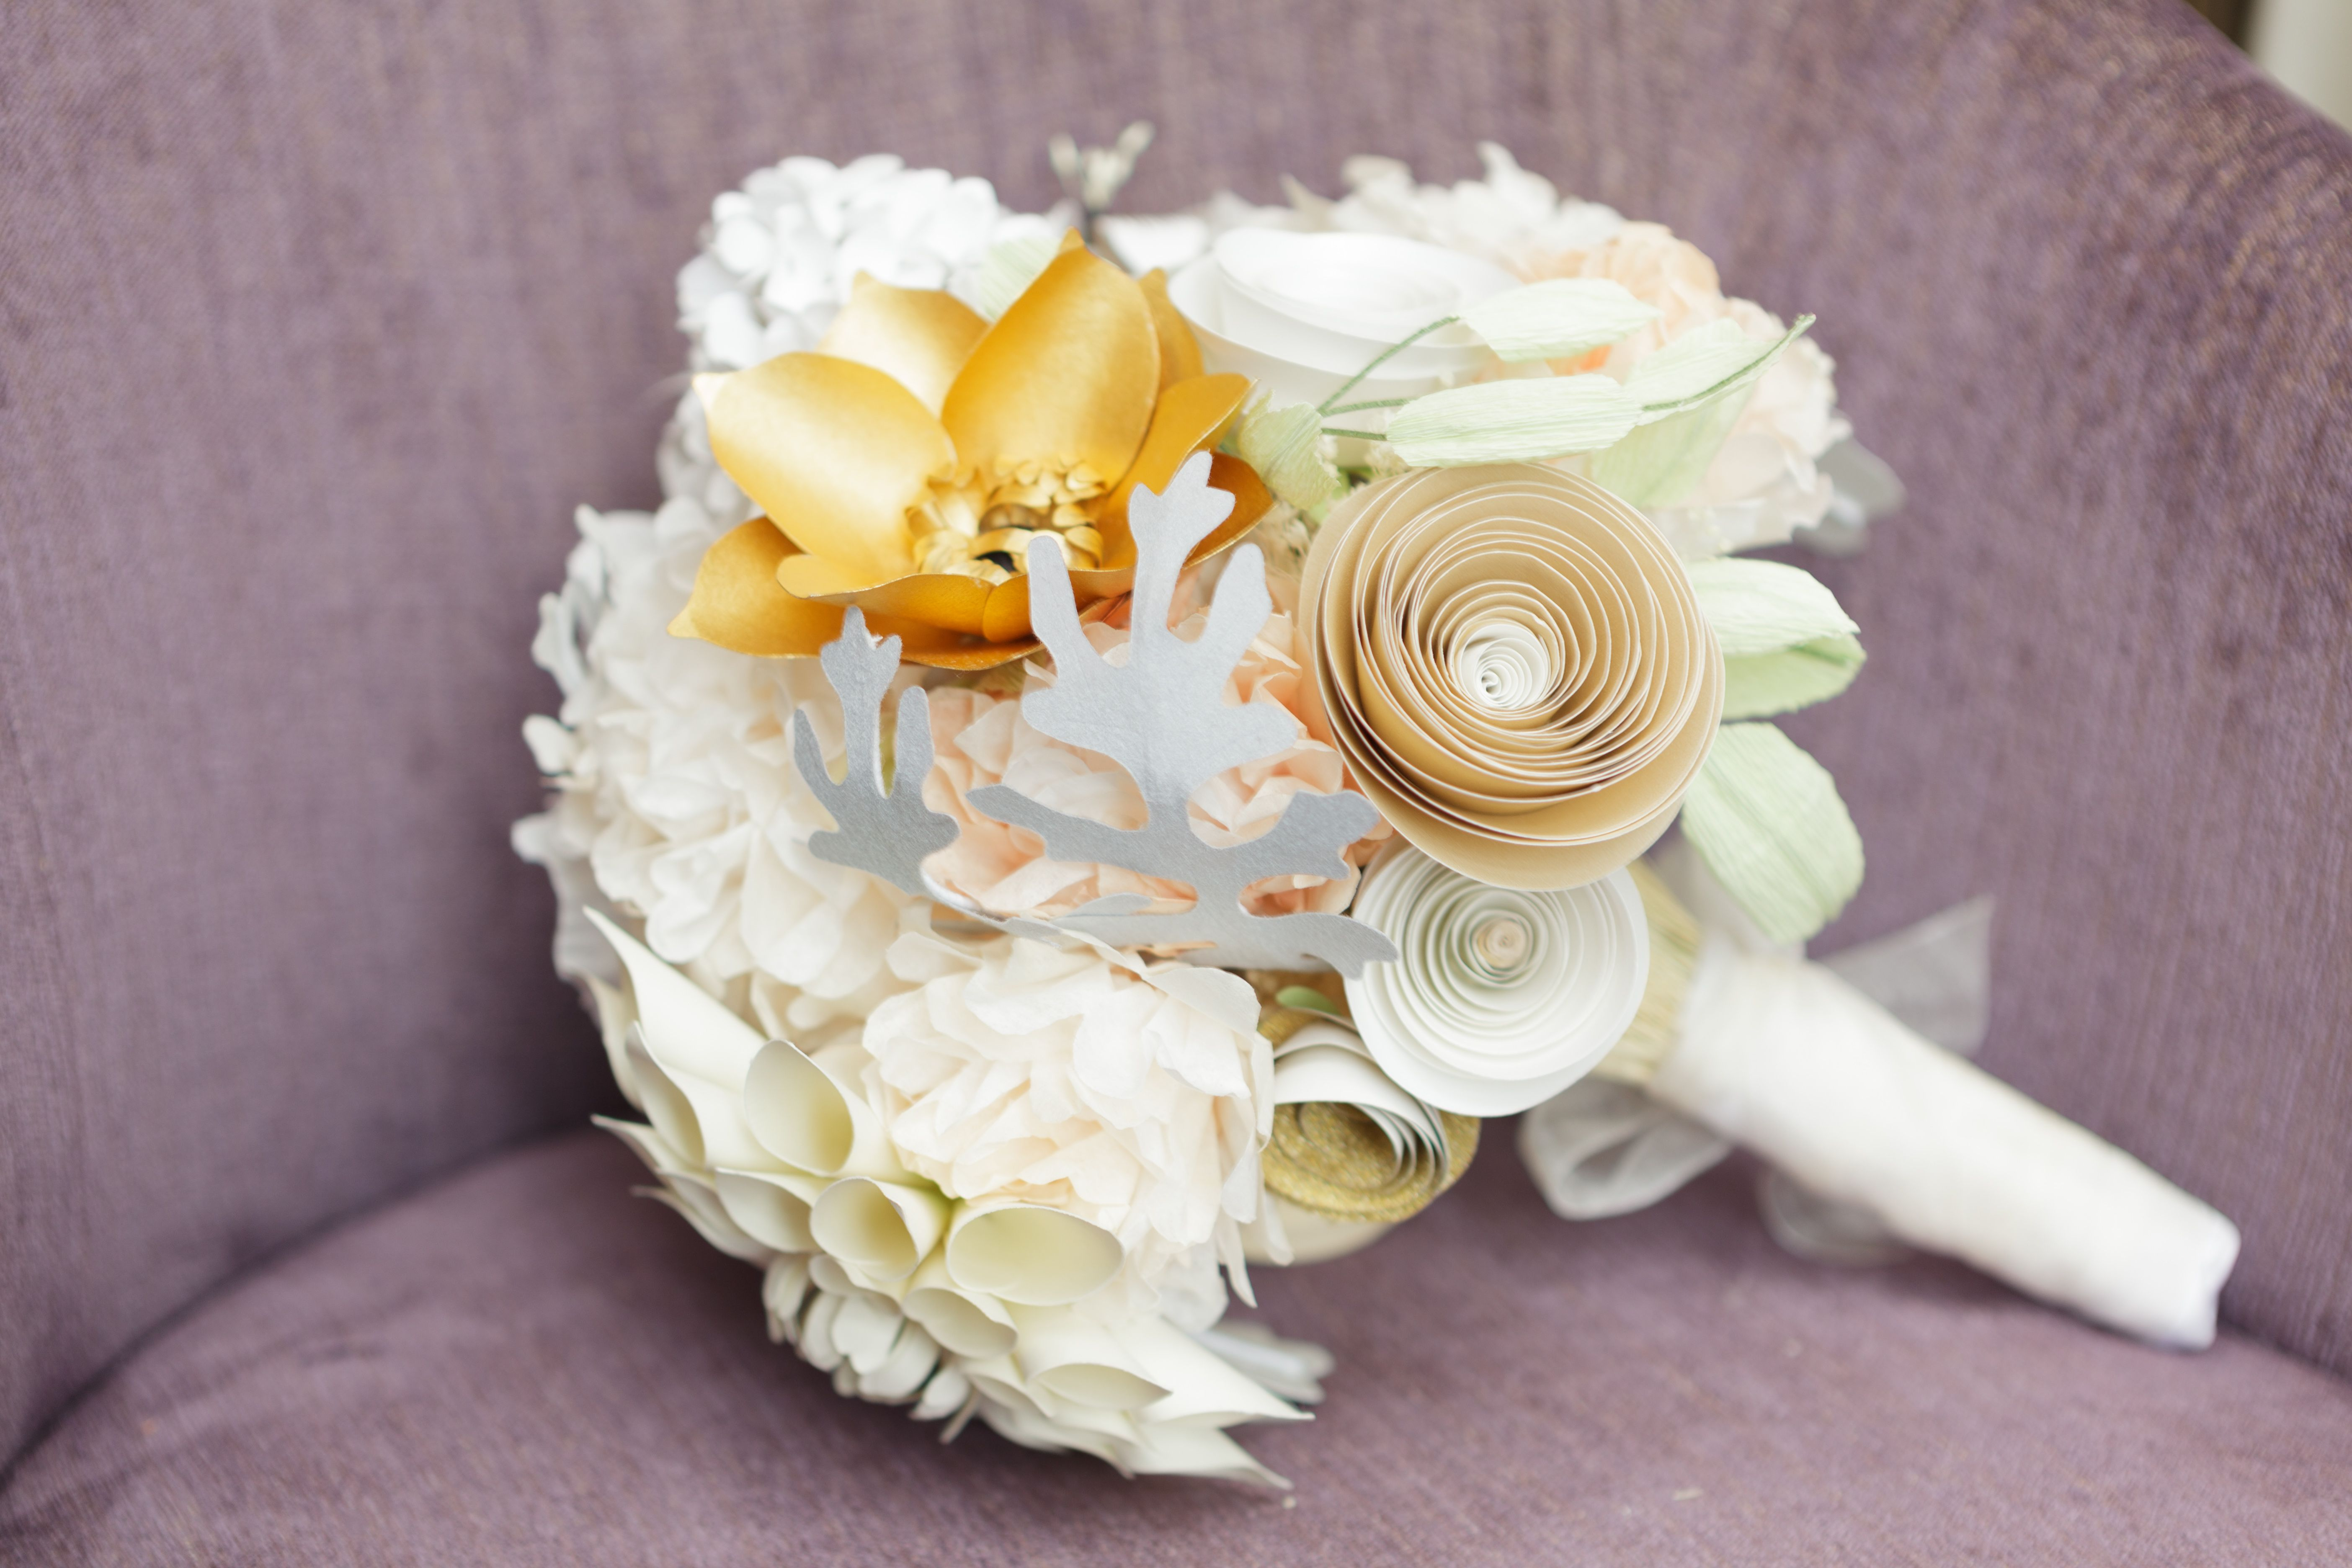 Paper flower bridal bouquet with 24k gold leaf flower by paper paper flower bridal bouquet with 24k gold leaf flower by paper portrayals paperportrayals izmirmasajfo